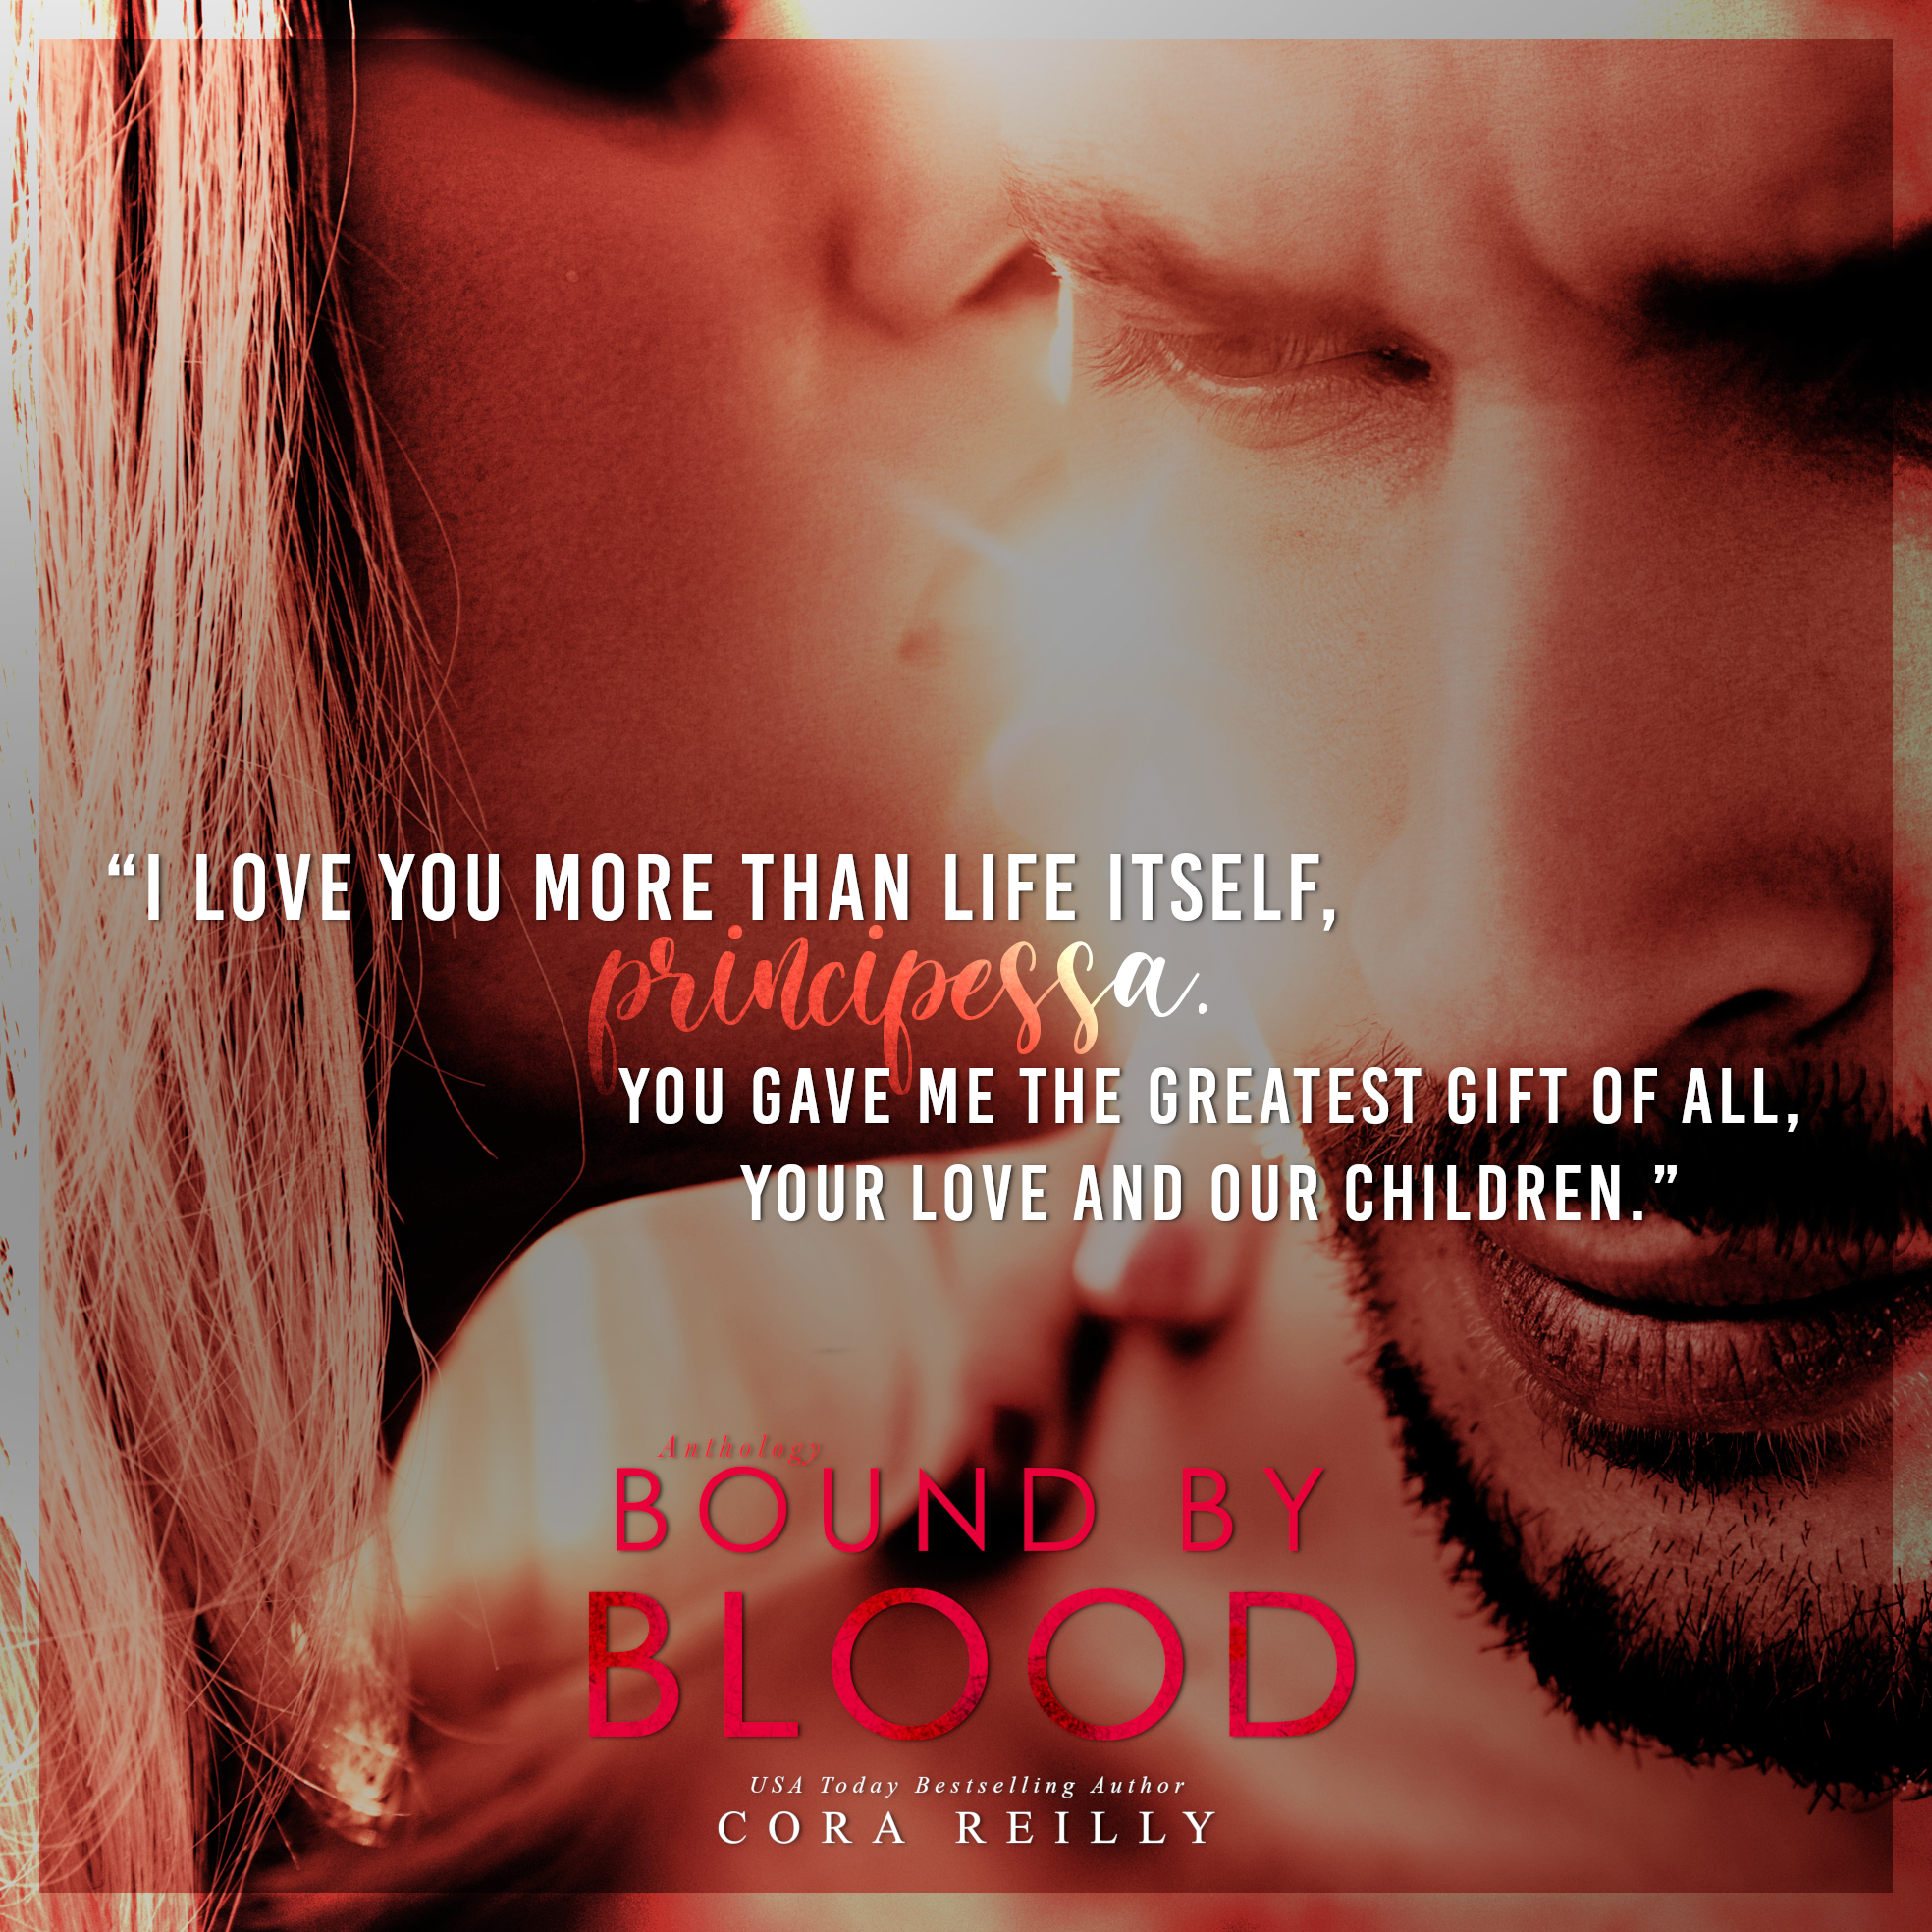 October 22nd BOUND BY BLOOD TEASER